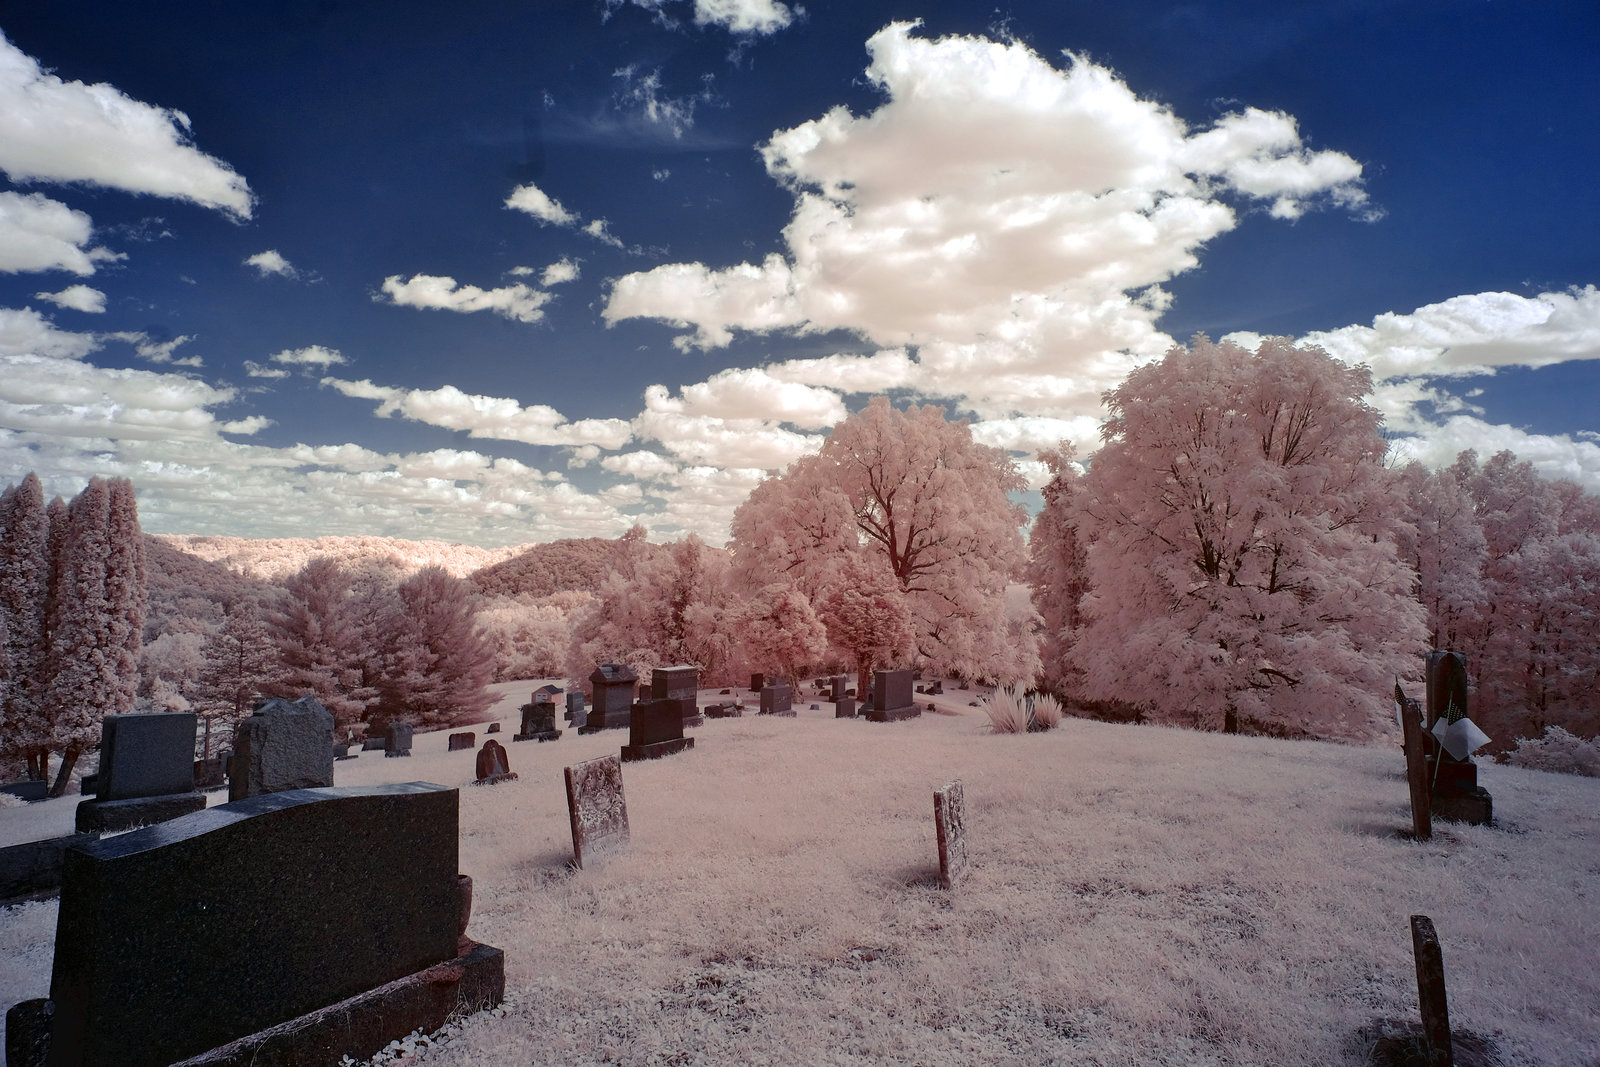 For some reason, it seems better in infrared